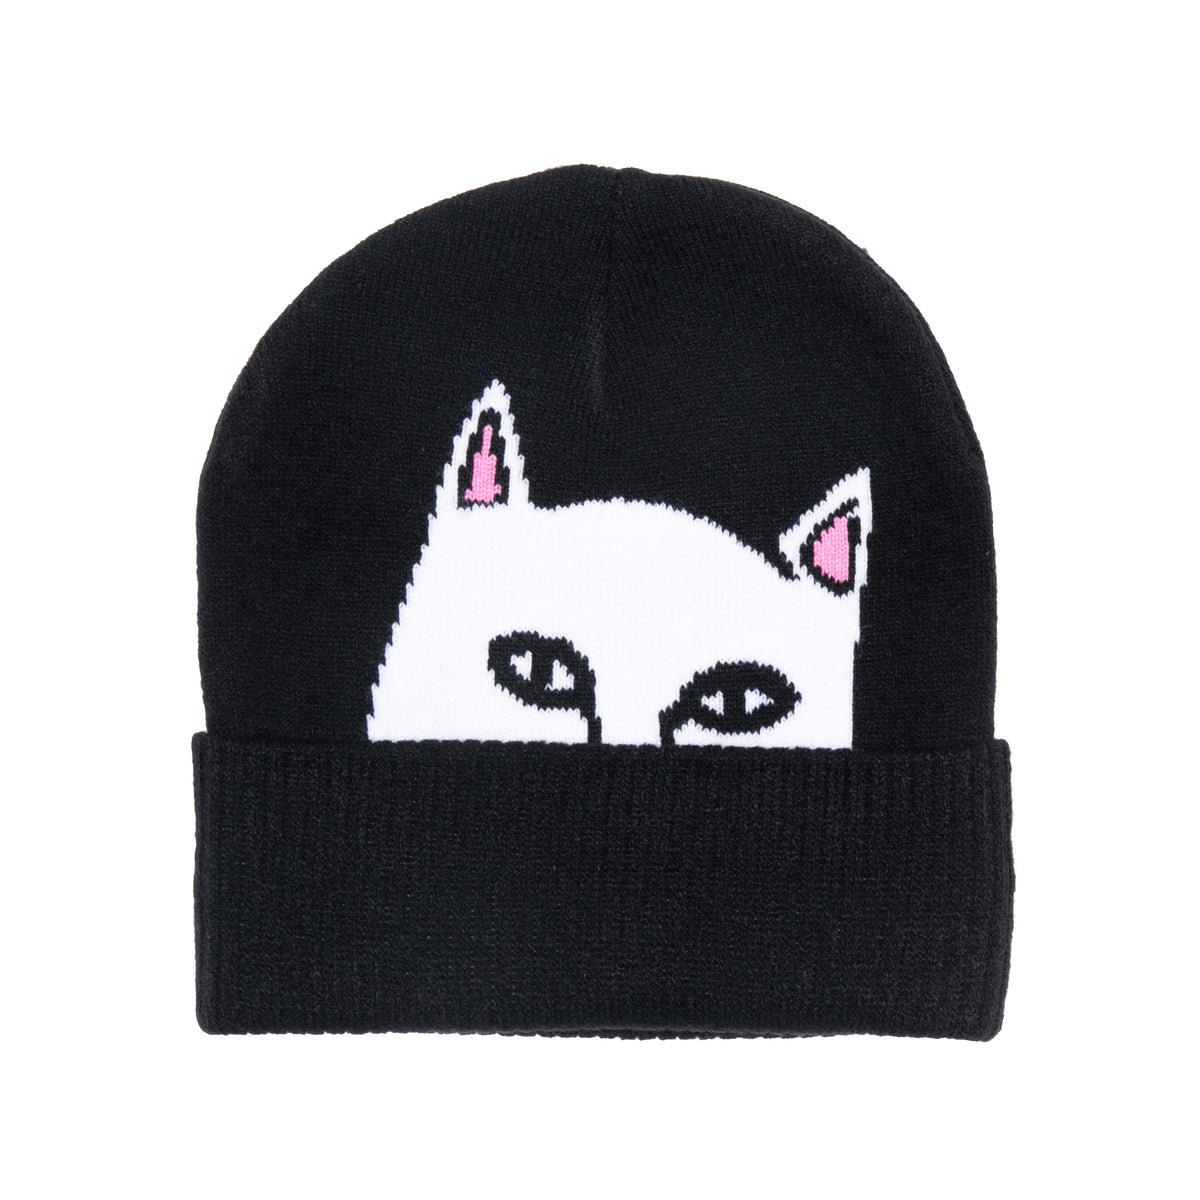 06dac248e121f Beanies - Keep Your Head Warm - Ripndip.com – RIPNDIP